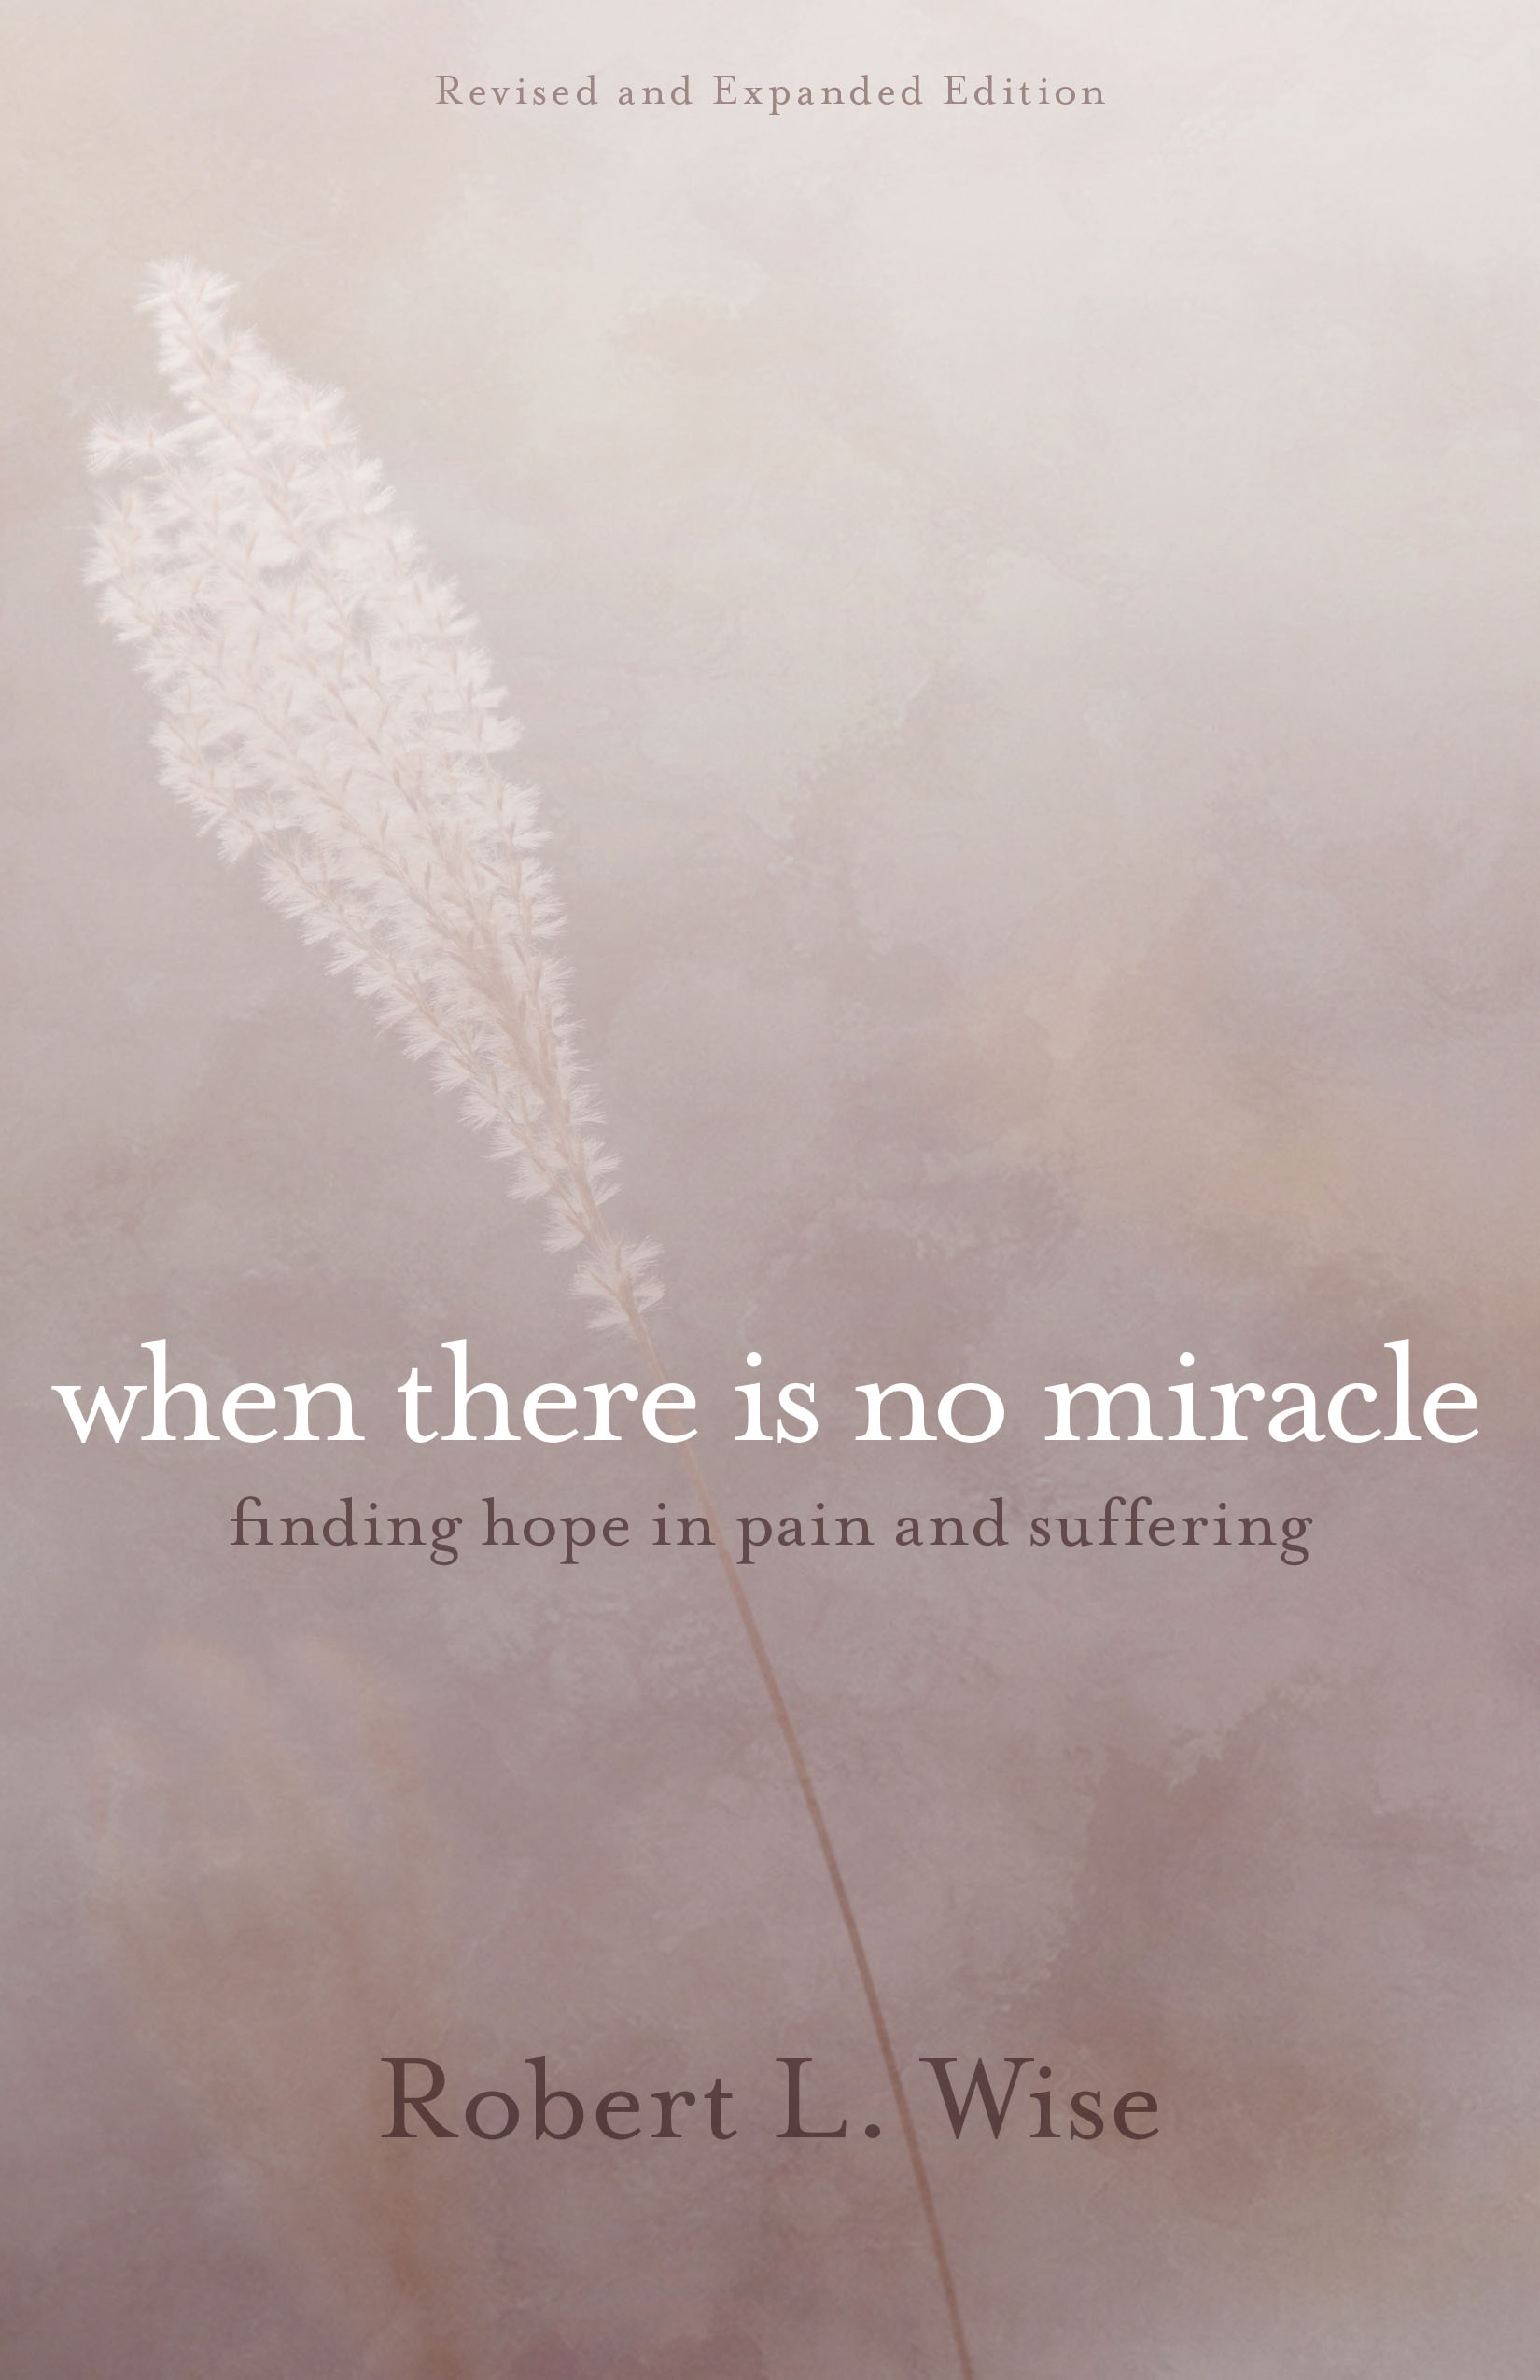 When There Is No Miracle (Revised and Expanded)